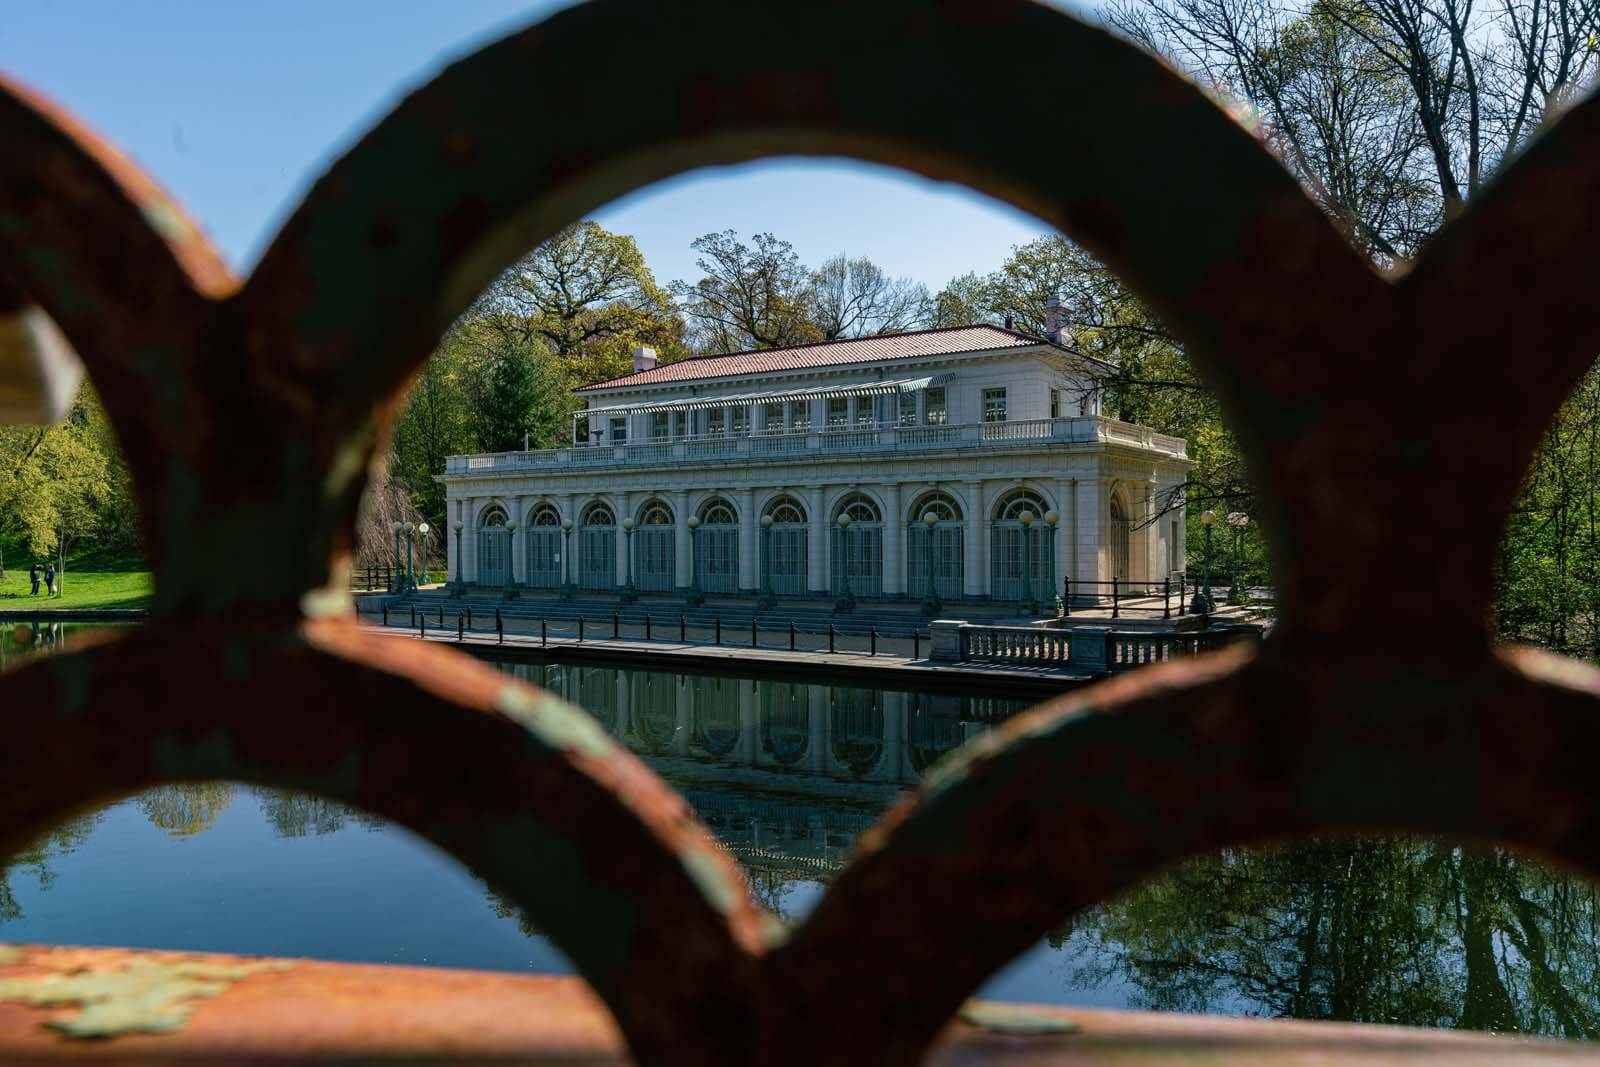 The boathouse in Prospect Park